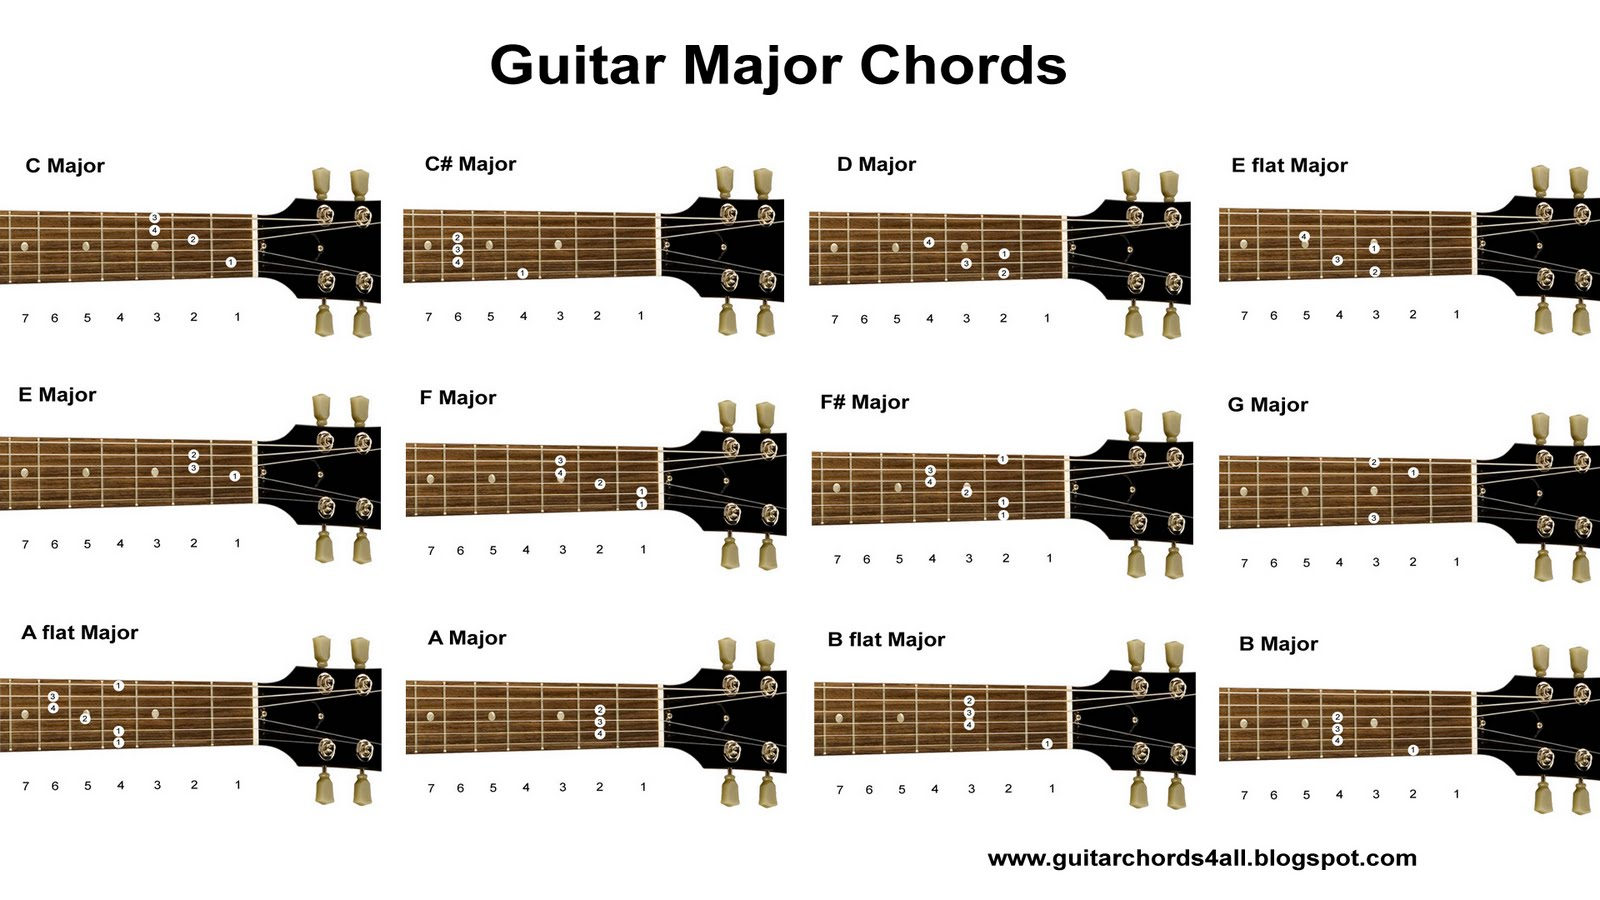 Guitar Chords-Major Chord Chart (Diagrams) Free Download